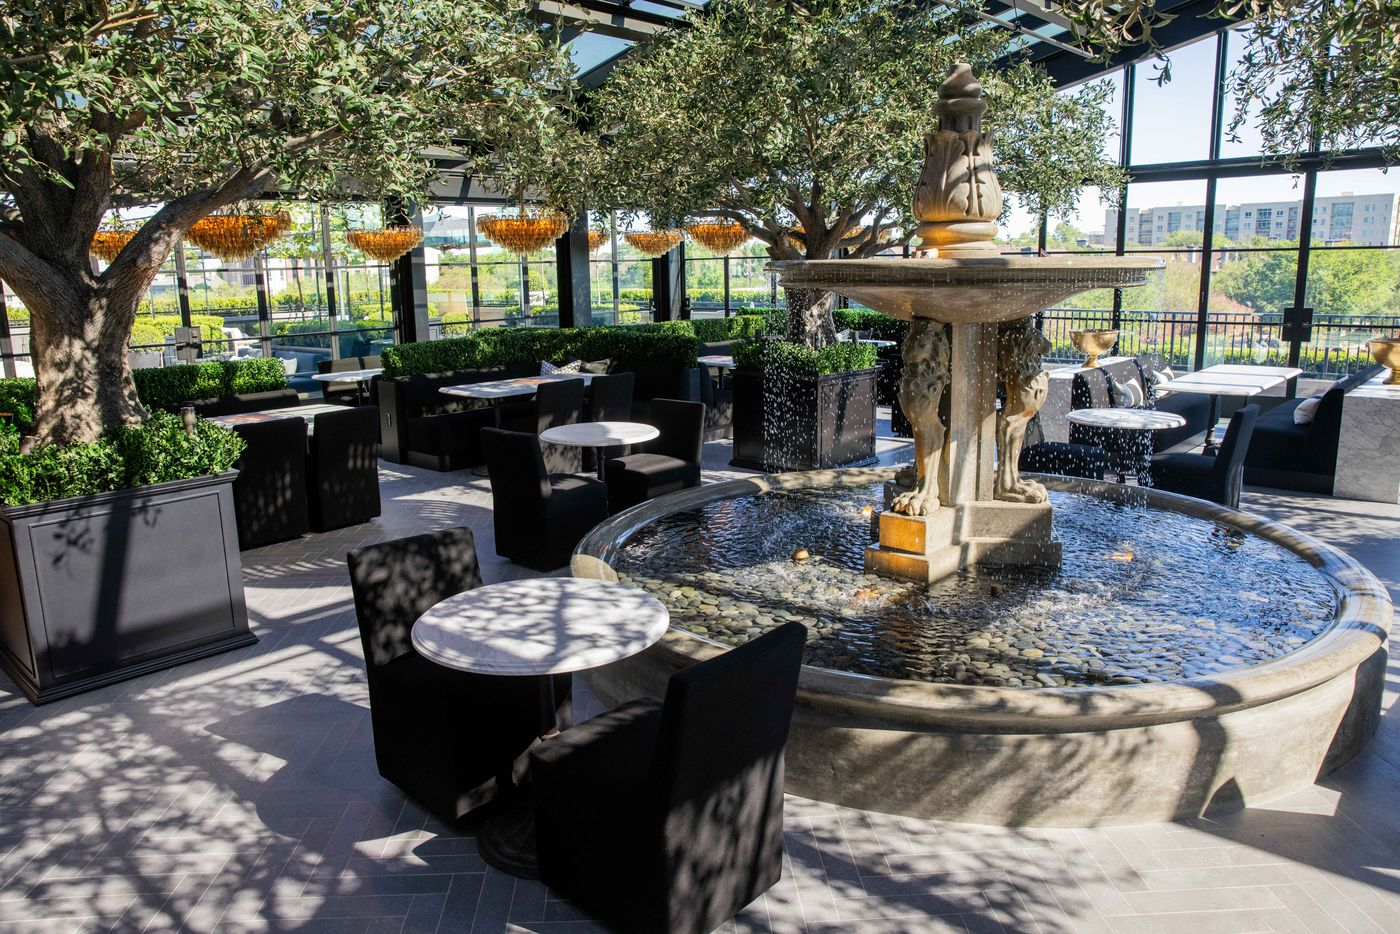 The dining area of the RH restaurant has fountains and French doors.